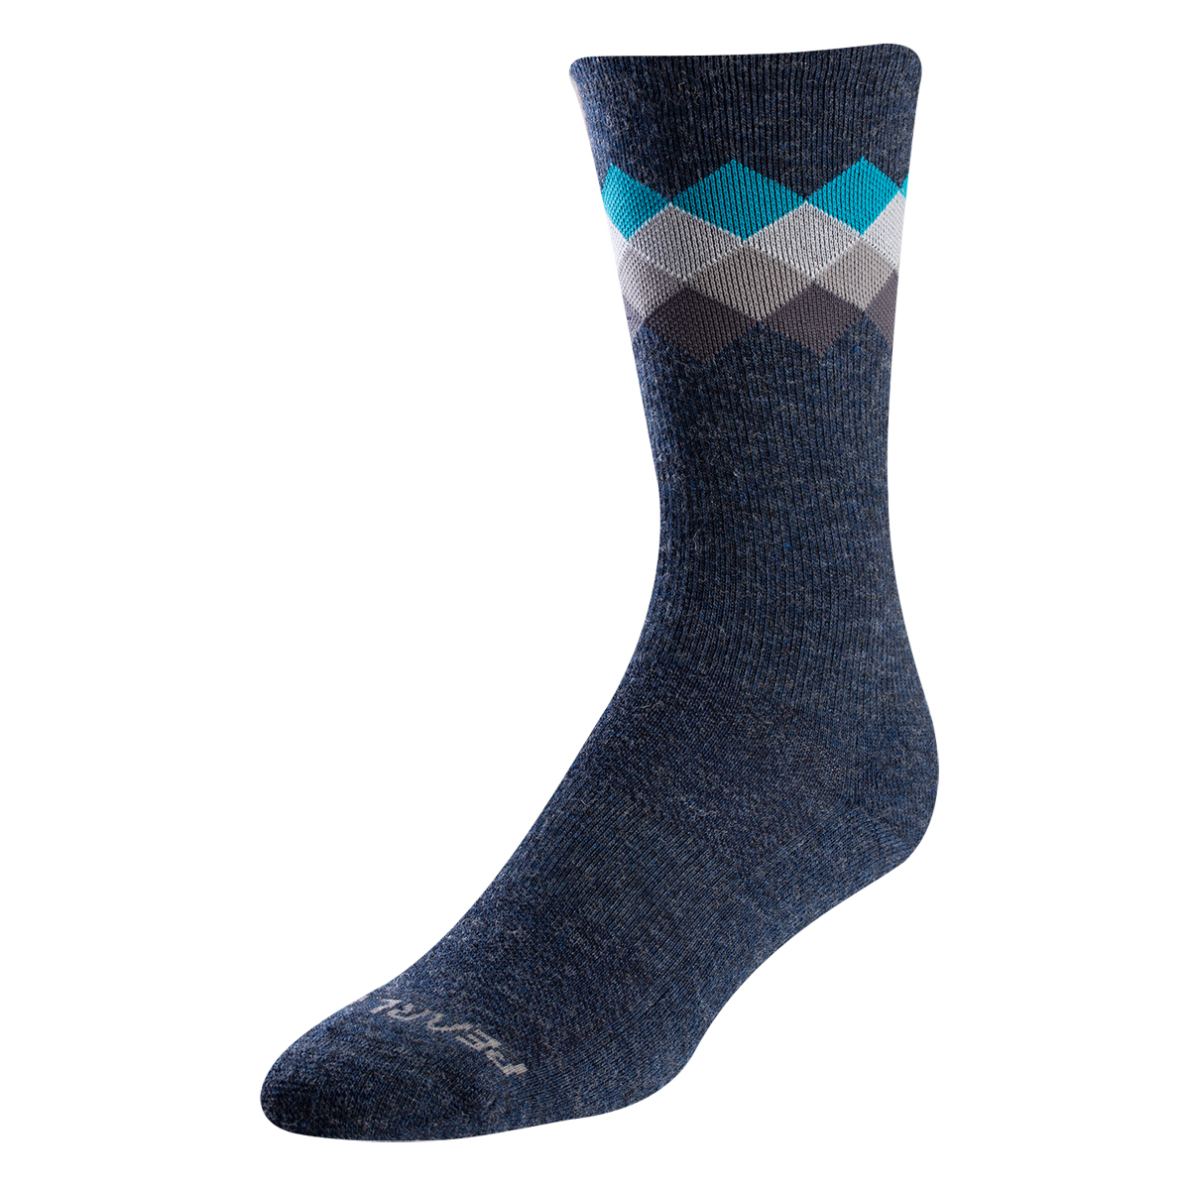 Merino Thrm Wool Sock